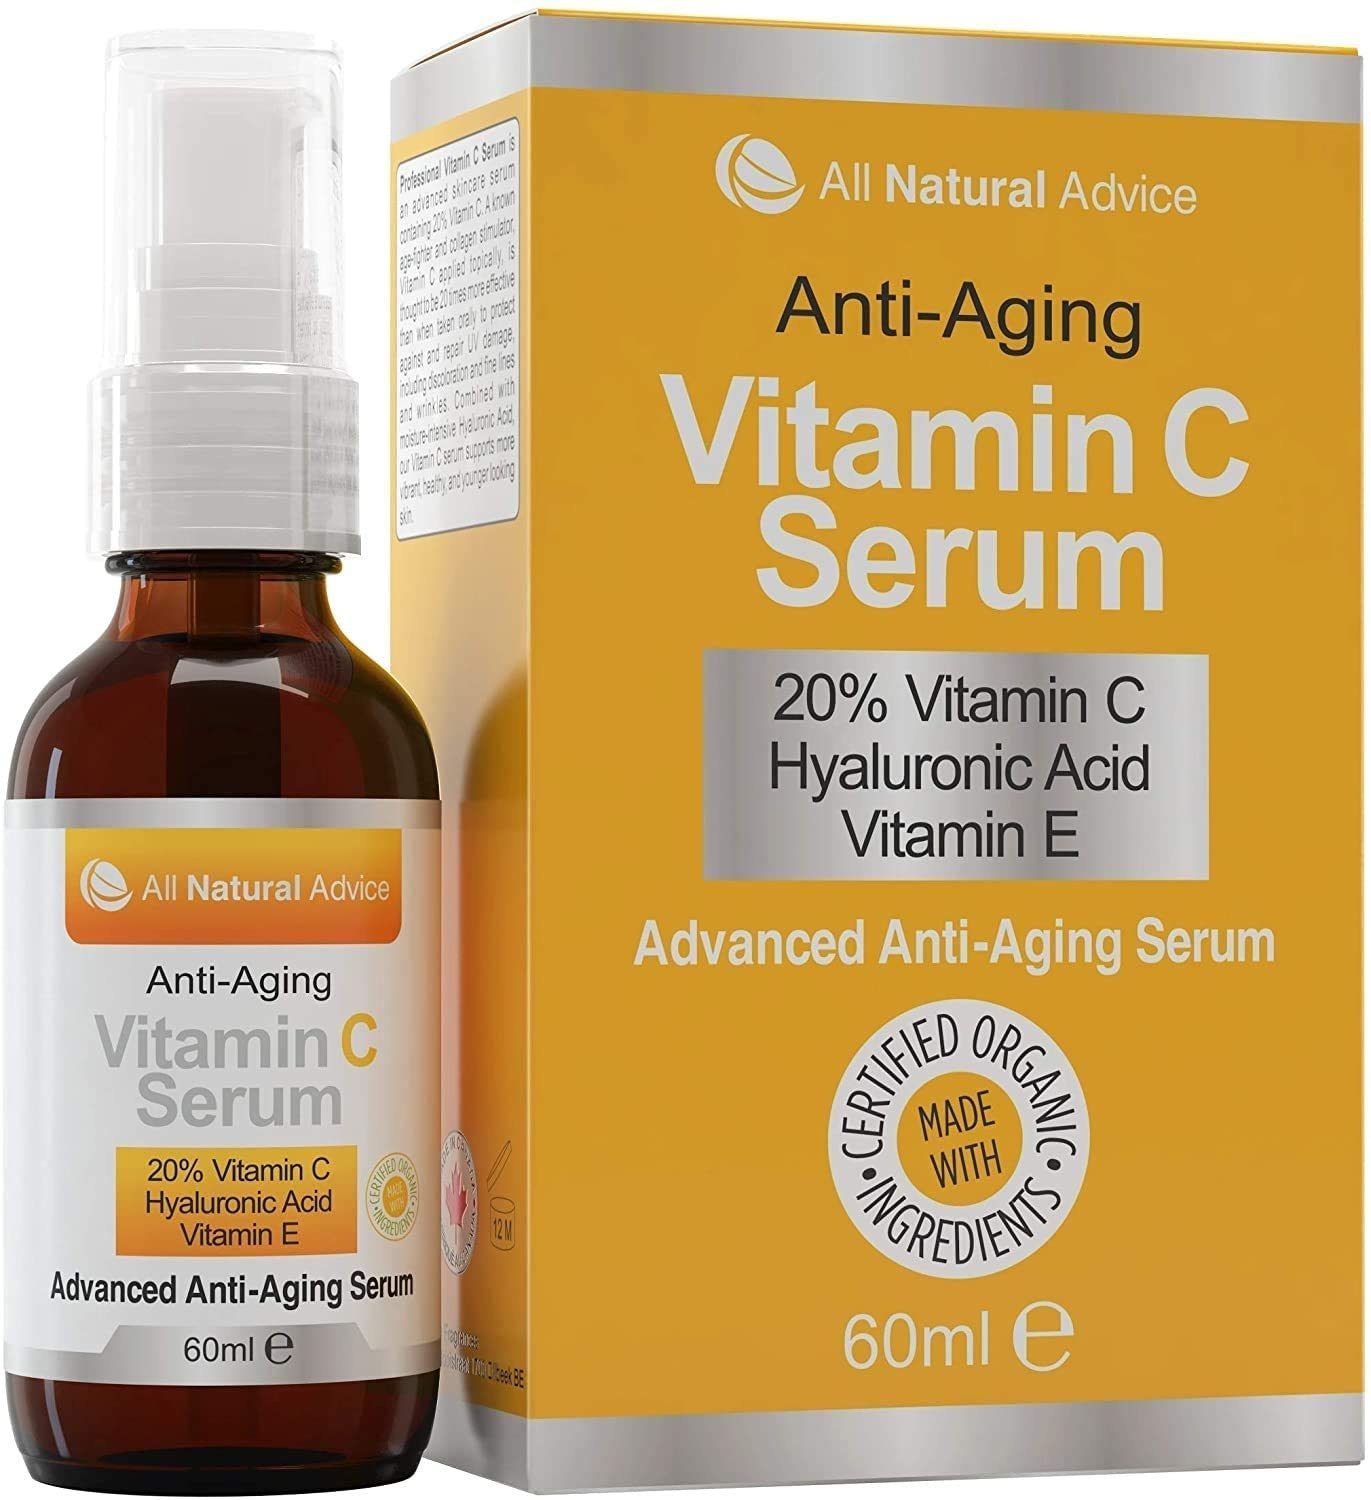 A bottle of the serum